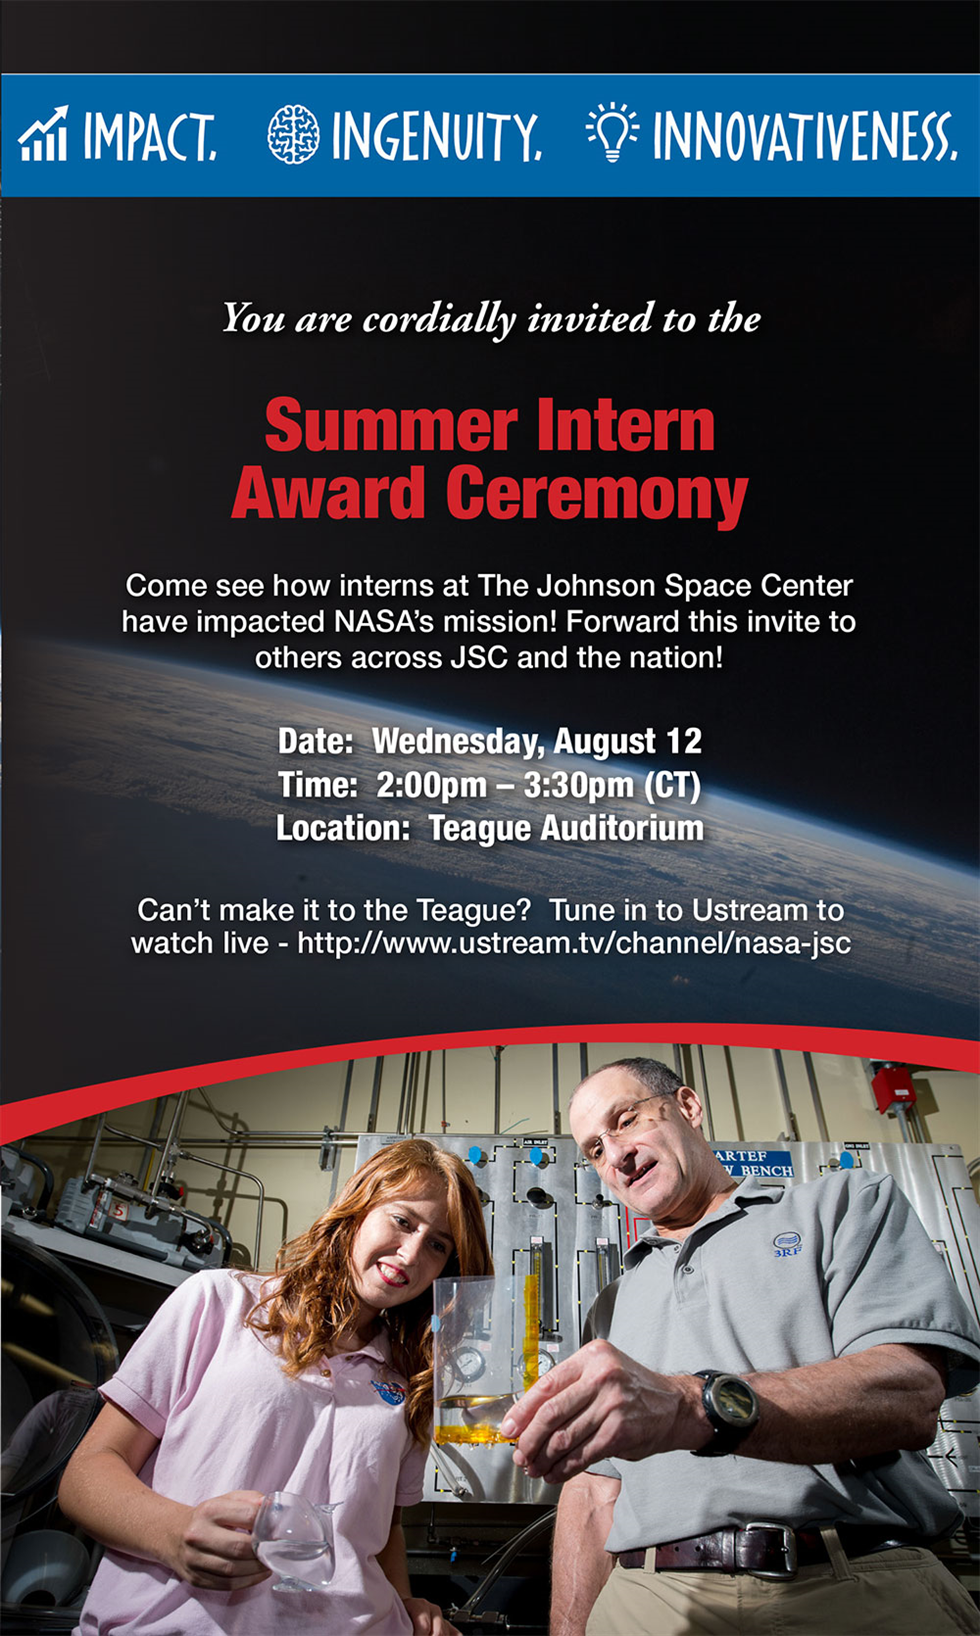 JSC Features - You're invited! Summer Intern Award Ceremony Aug. 12 - https://roundupreads.jsc ...